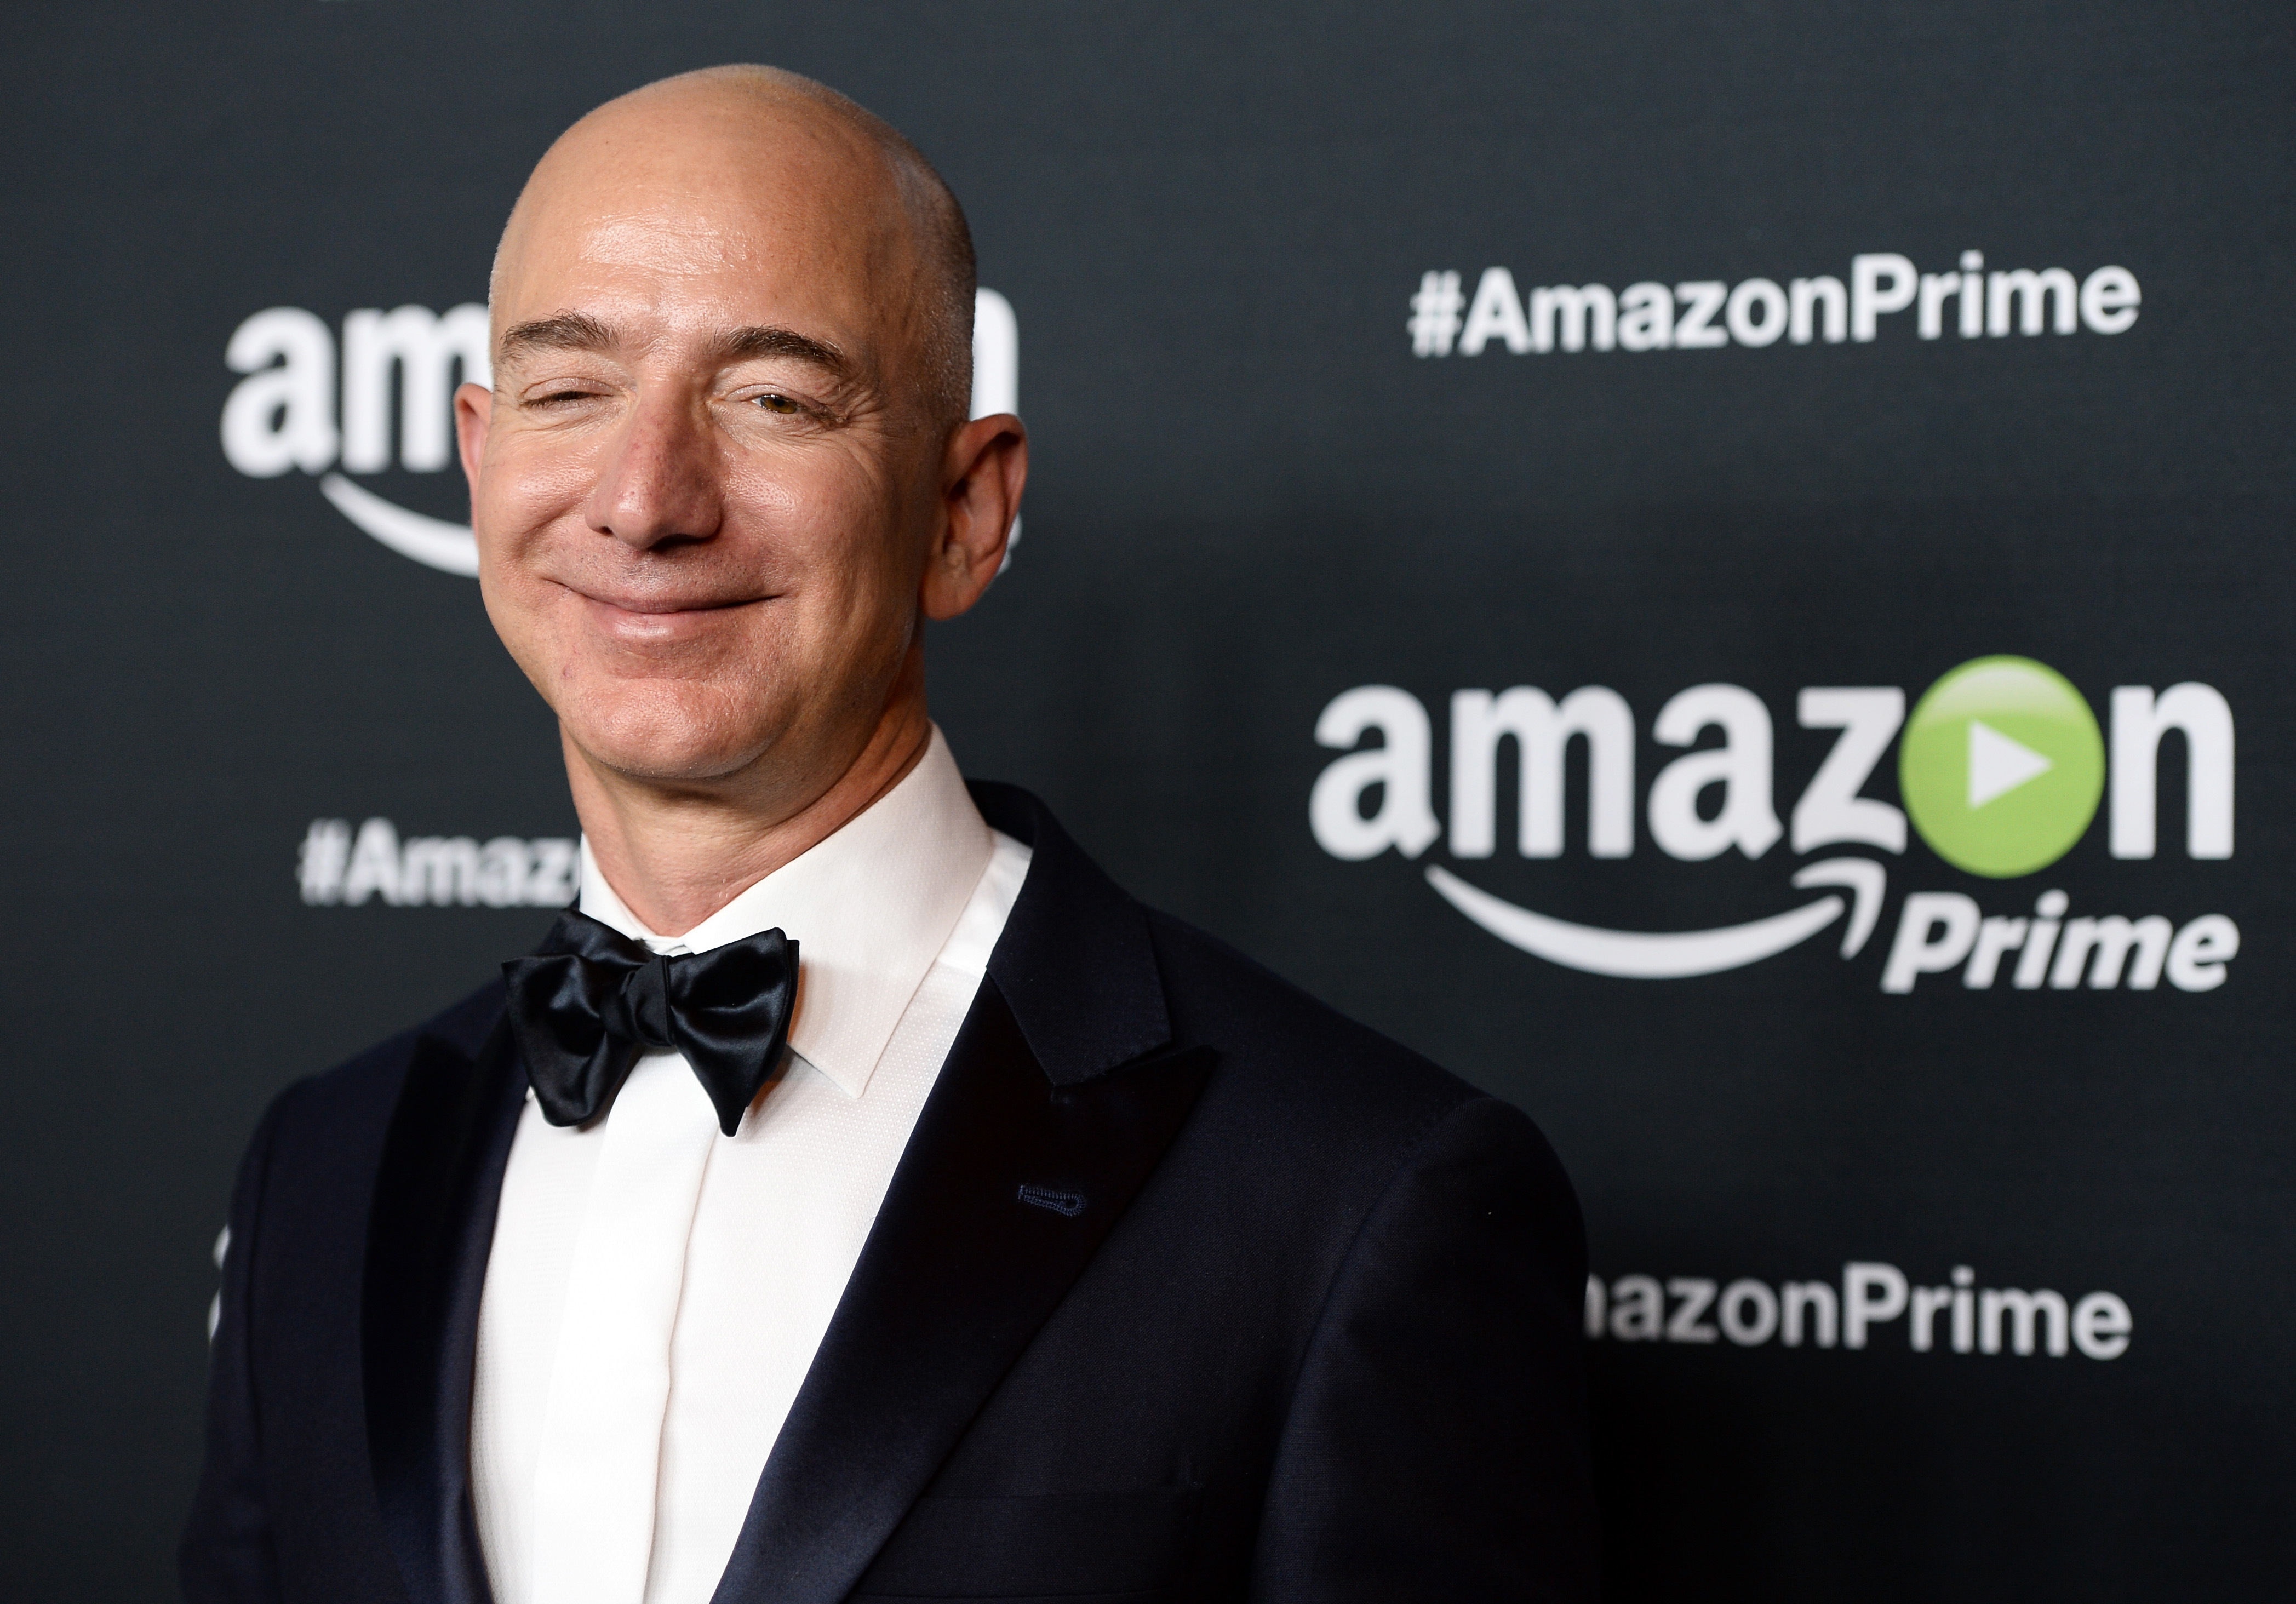 How Amazon Prime Took Over Online Shopping